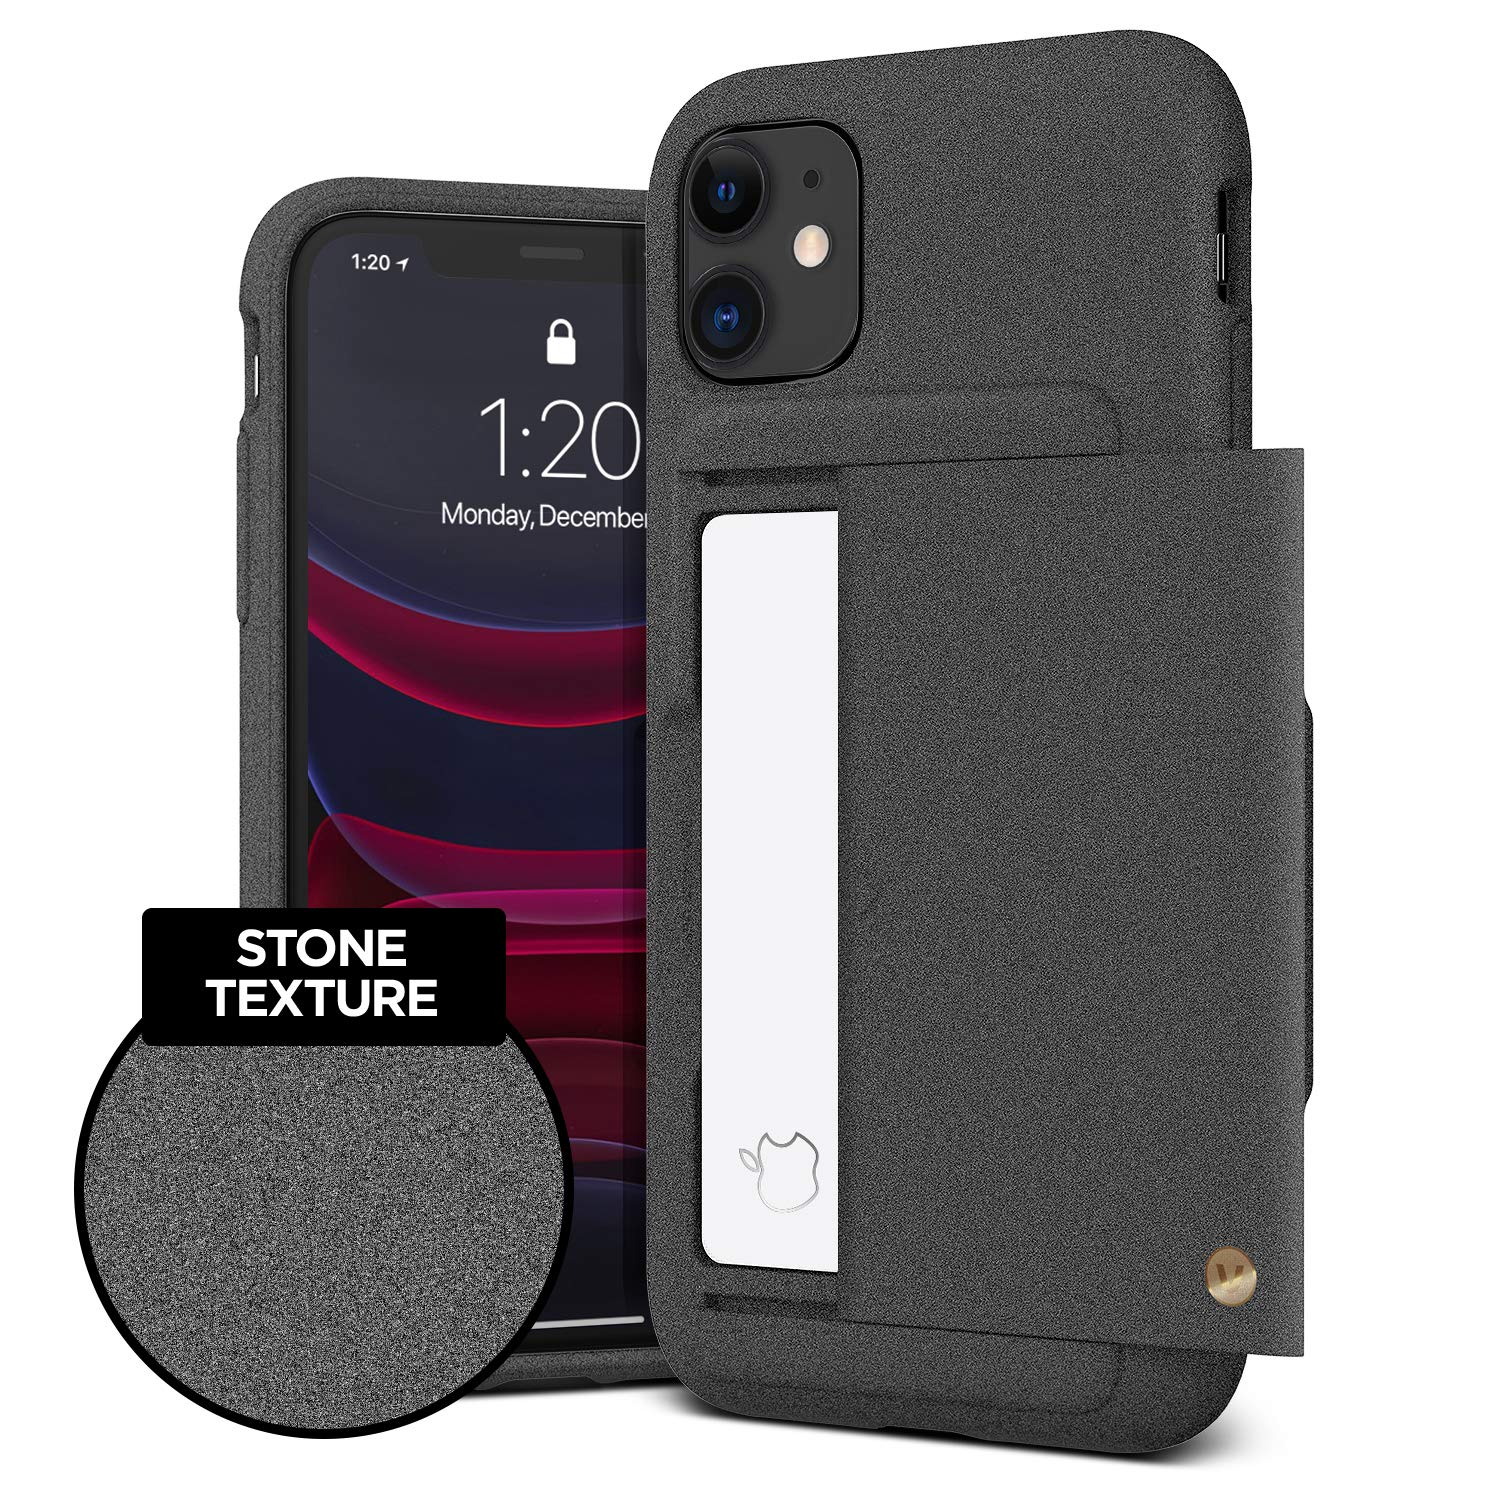 VRS DESIGN Damda Glide Shield Compatible for iPhone 11 Case, with [2 Cards] Premium [Semi Auto] Wallet for iPhone 11 6.1 inch (2019) Sand Stone